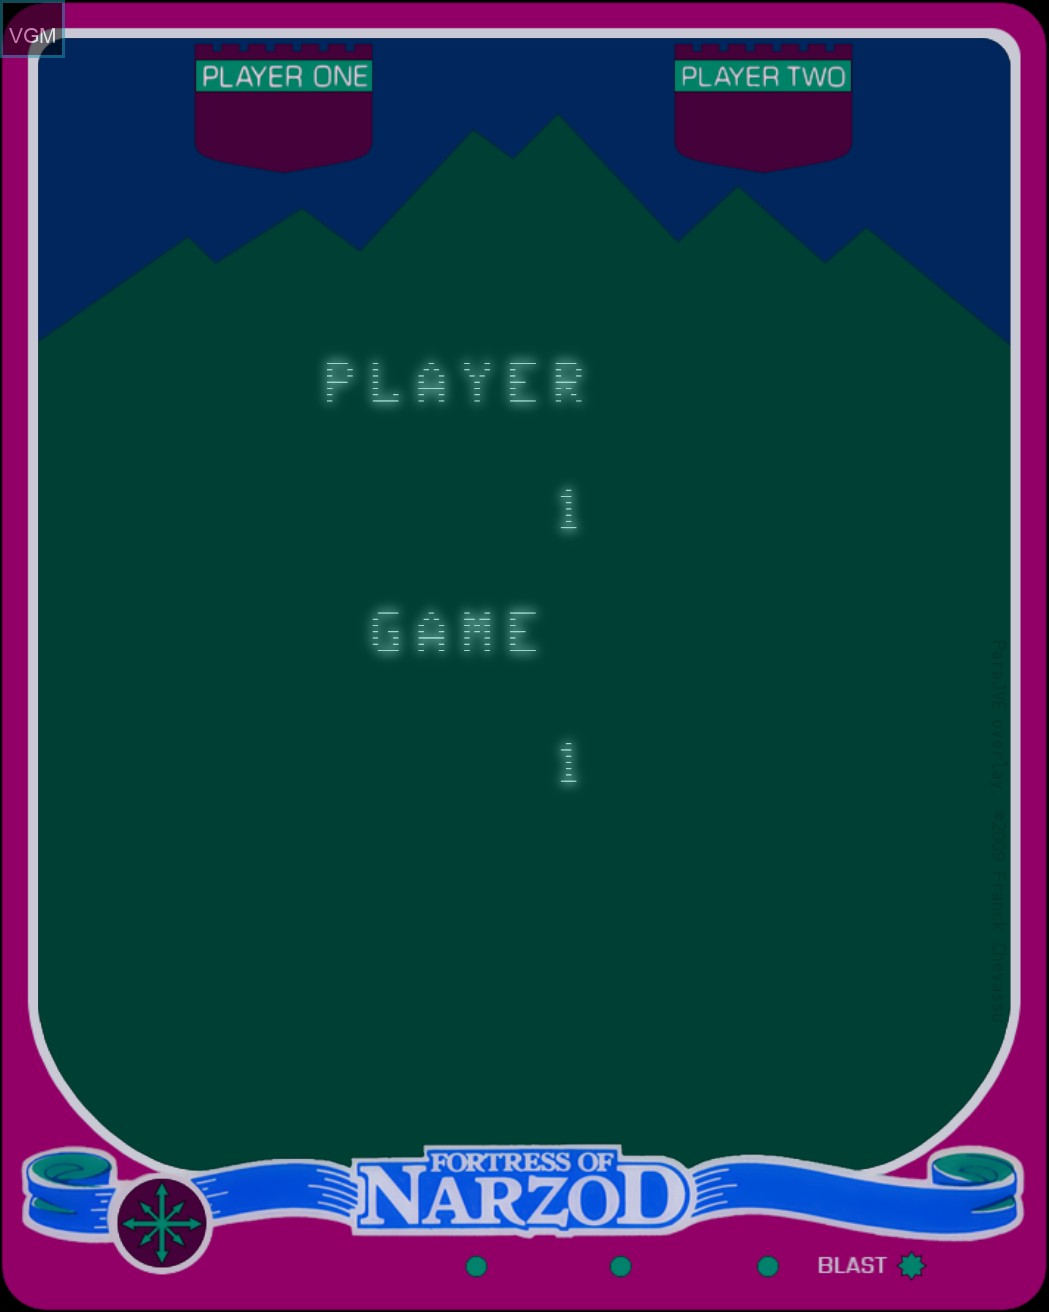 Image du menu du jeu Fortress of Narzod sur MB Vectrex